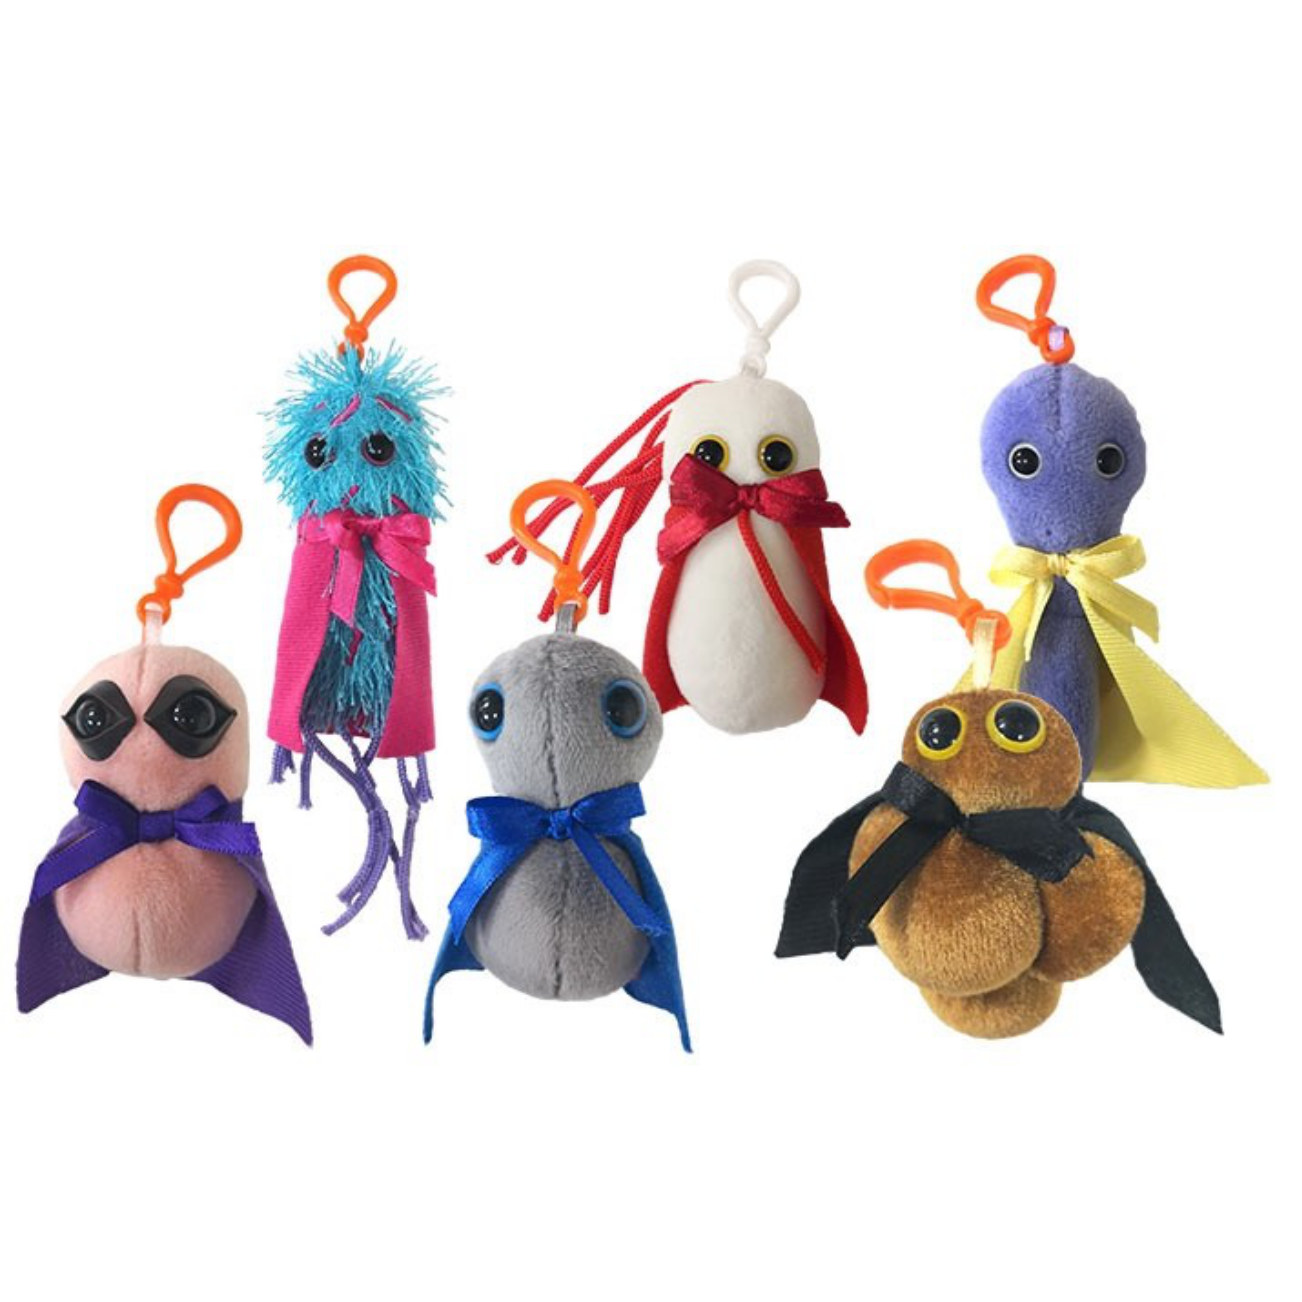 Giant Microbe Superbug 6 Pack - Planet Microbe